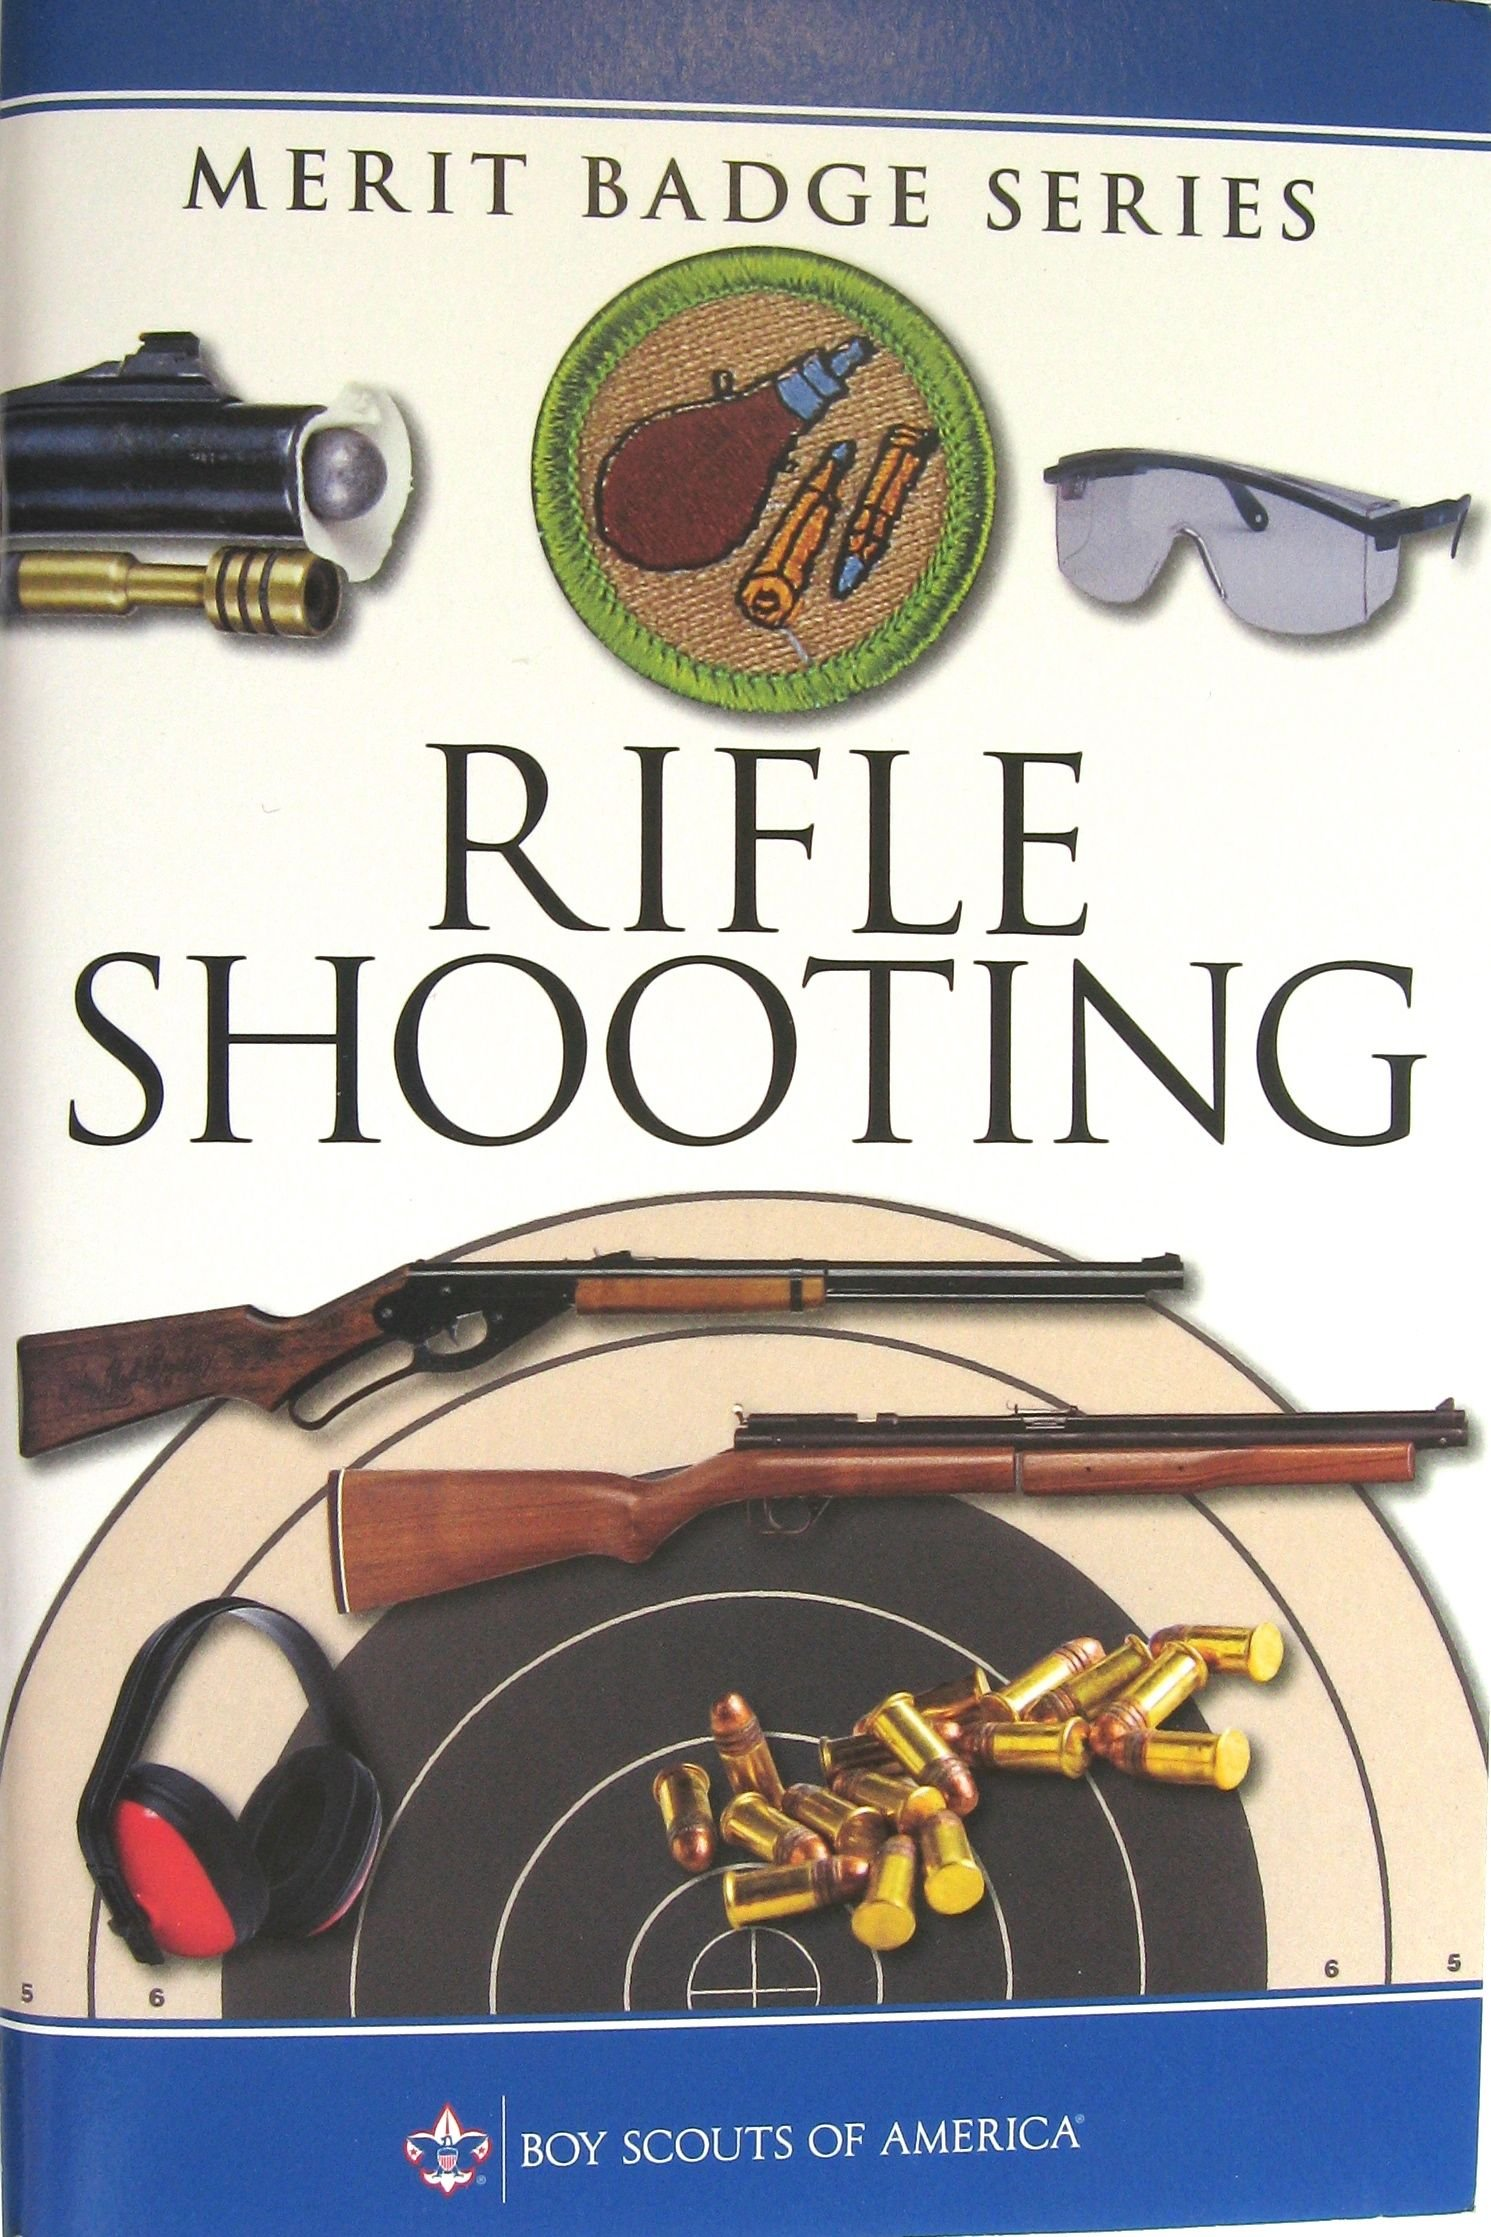 Rifle Shooting Merit Badge Boy Scouts Of America Amazon Com Books